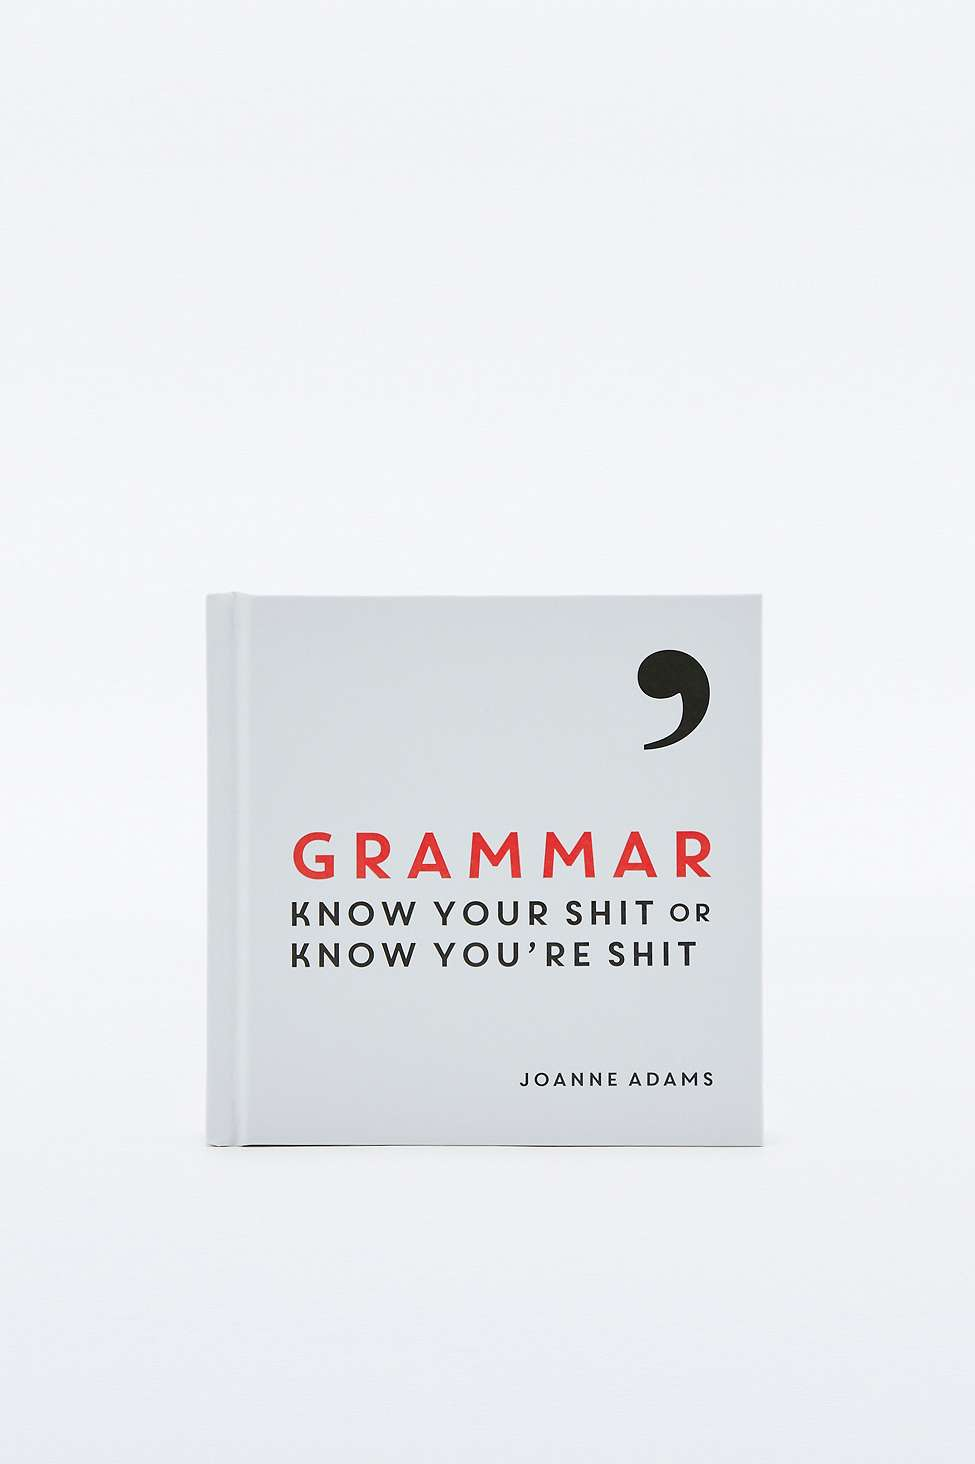 grammar book Unique And Quirky Gift Ideas Any Odd Person Will Appreciate (Fun Gifts!)